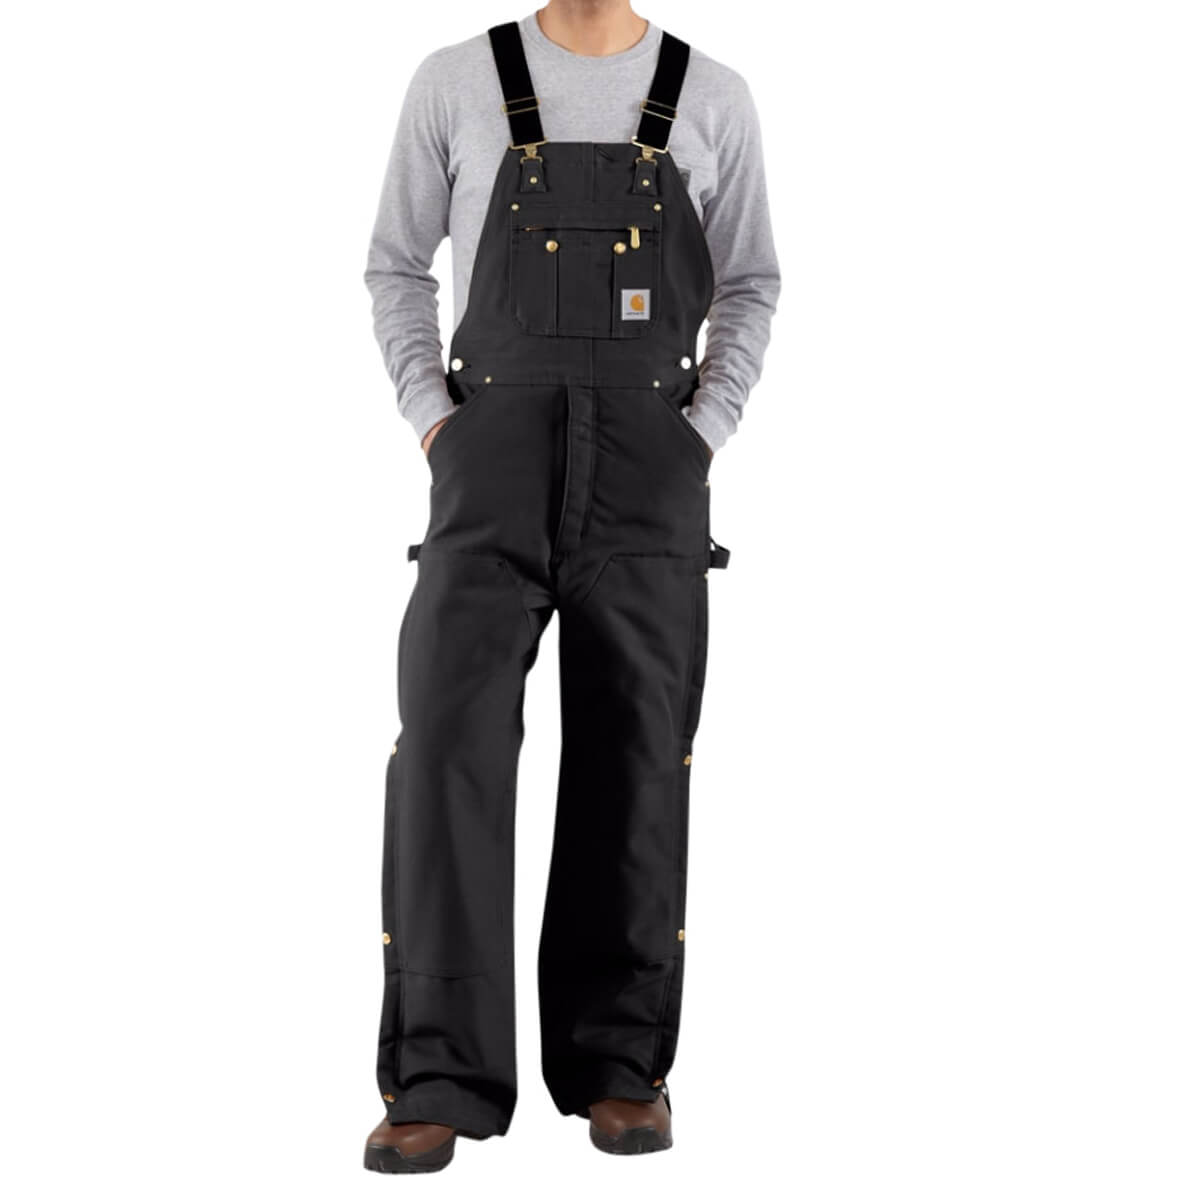 Carhartt Black Duck Zip-To-Thigh Bib Overall/Quilt Lined